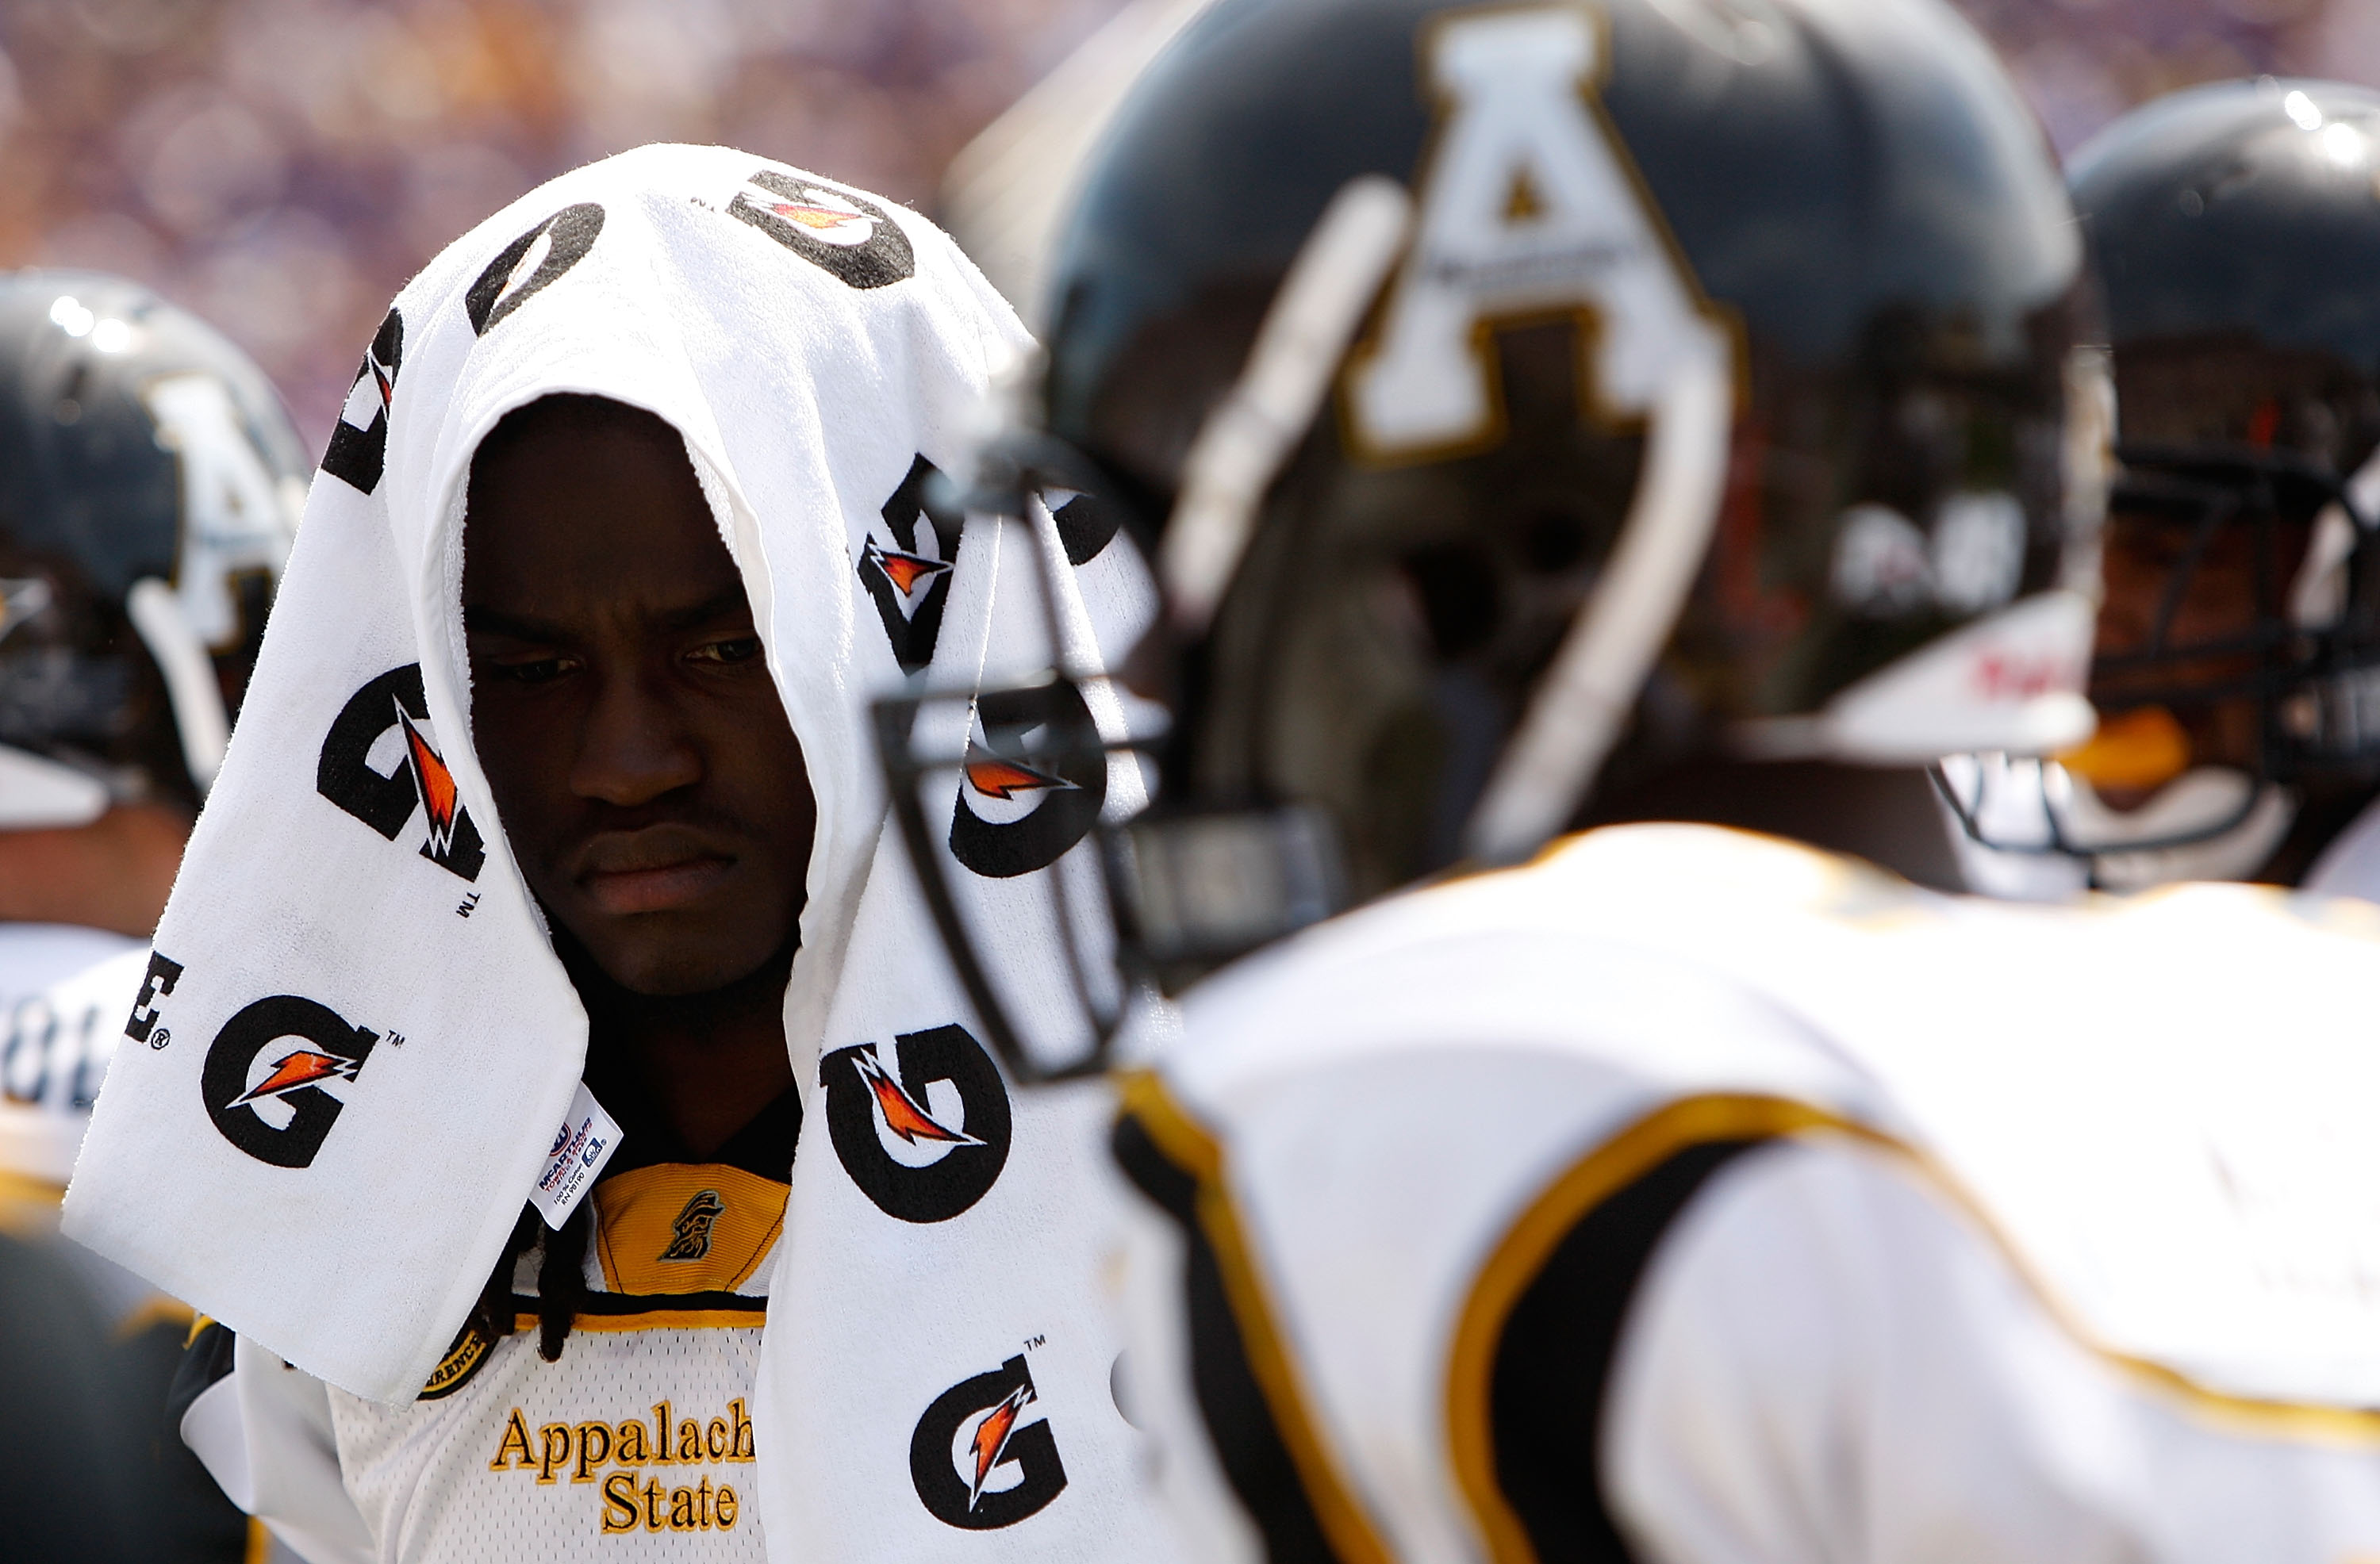 GREENVILLE, NC - SEPTEMBER 05:  Armanti Edwards #14 of the Appalachian State Mountaineers reacts to his teams' 29-24 loss to the East Carolina Pirates at Dowdy-Ficklen Stadium on September 5, 2009 in Greenville, North Carolina.  (Photo by Streeter Lecka/G